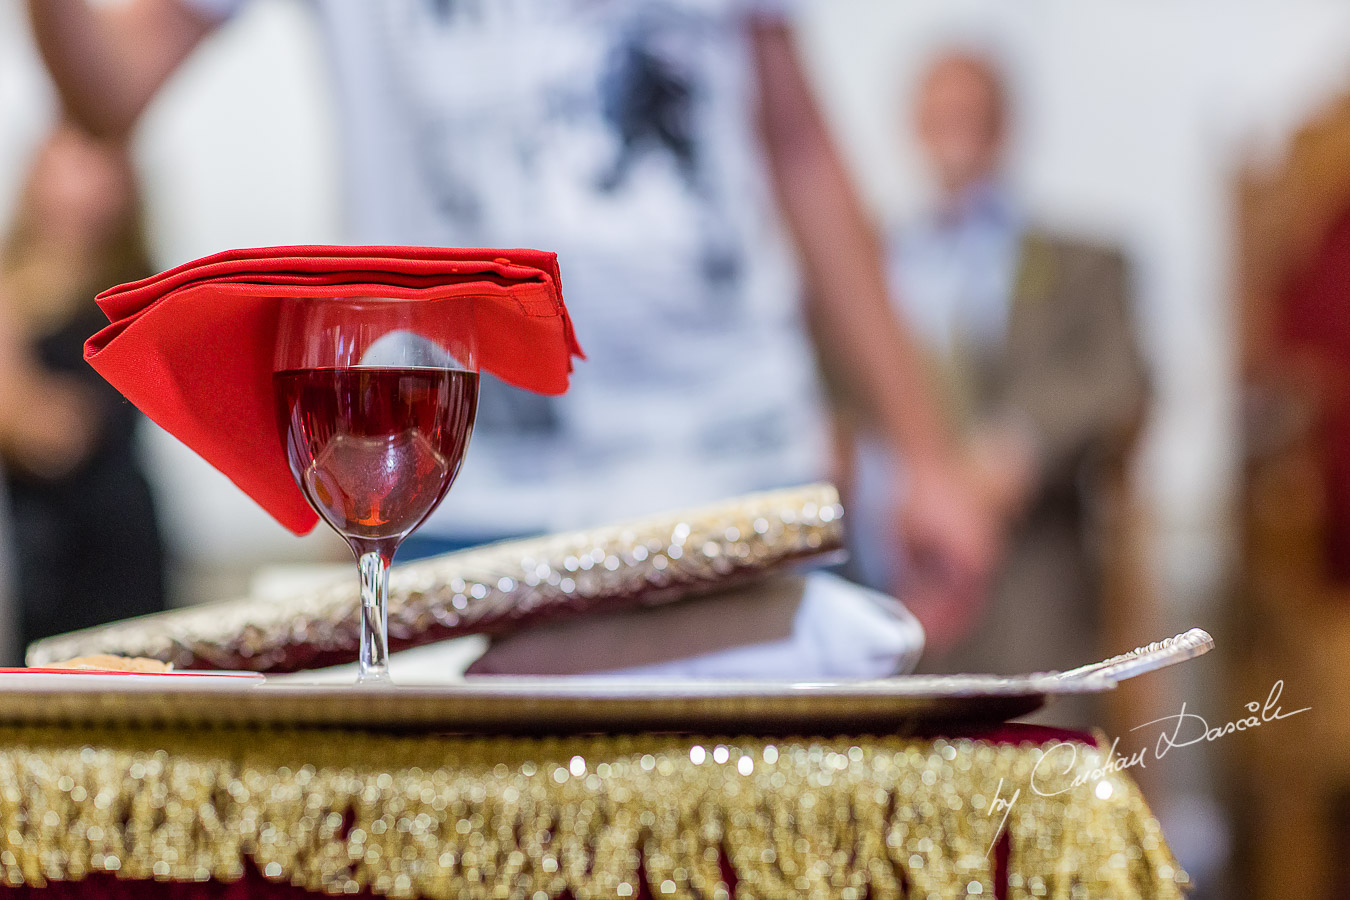 Church wine used for wedding ceremony at Traditional Cyprus Wedding in Tochni, Larnaca.